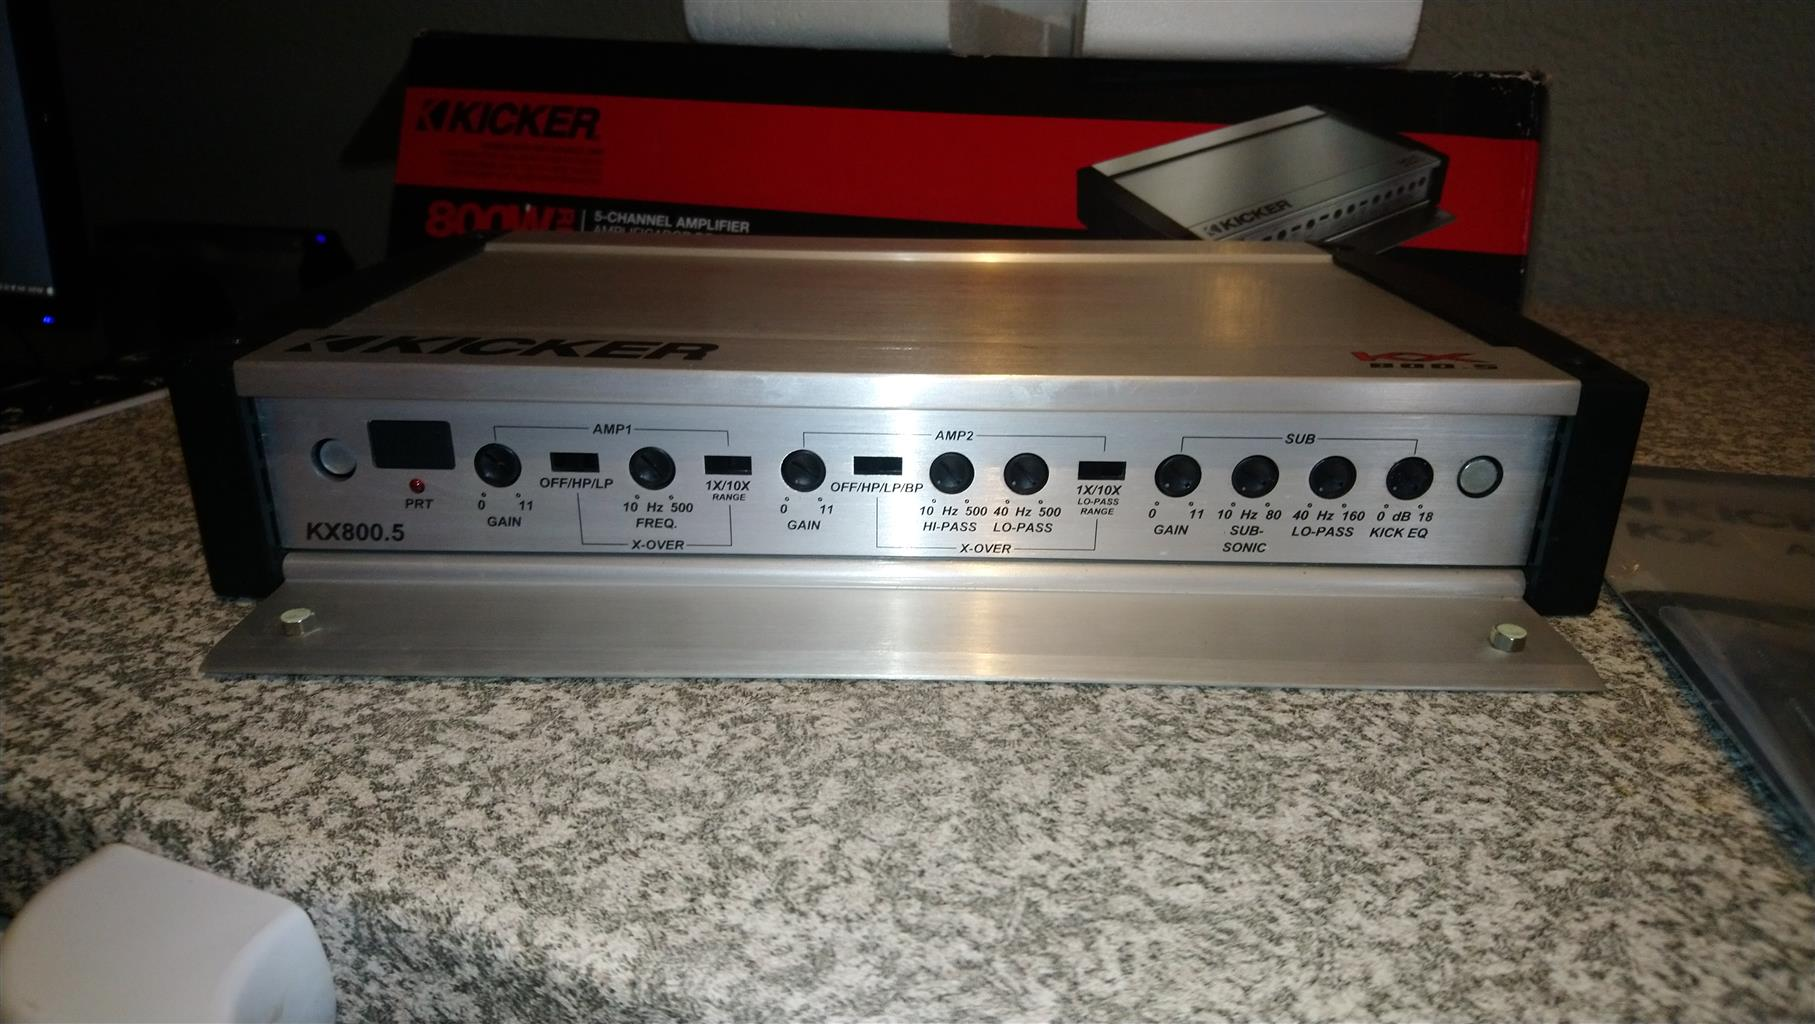 Kicker KX800.5 Amplifier for sale